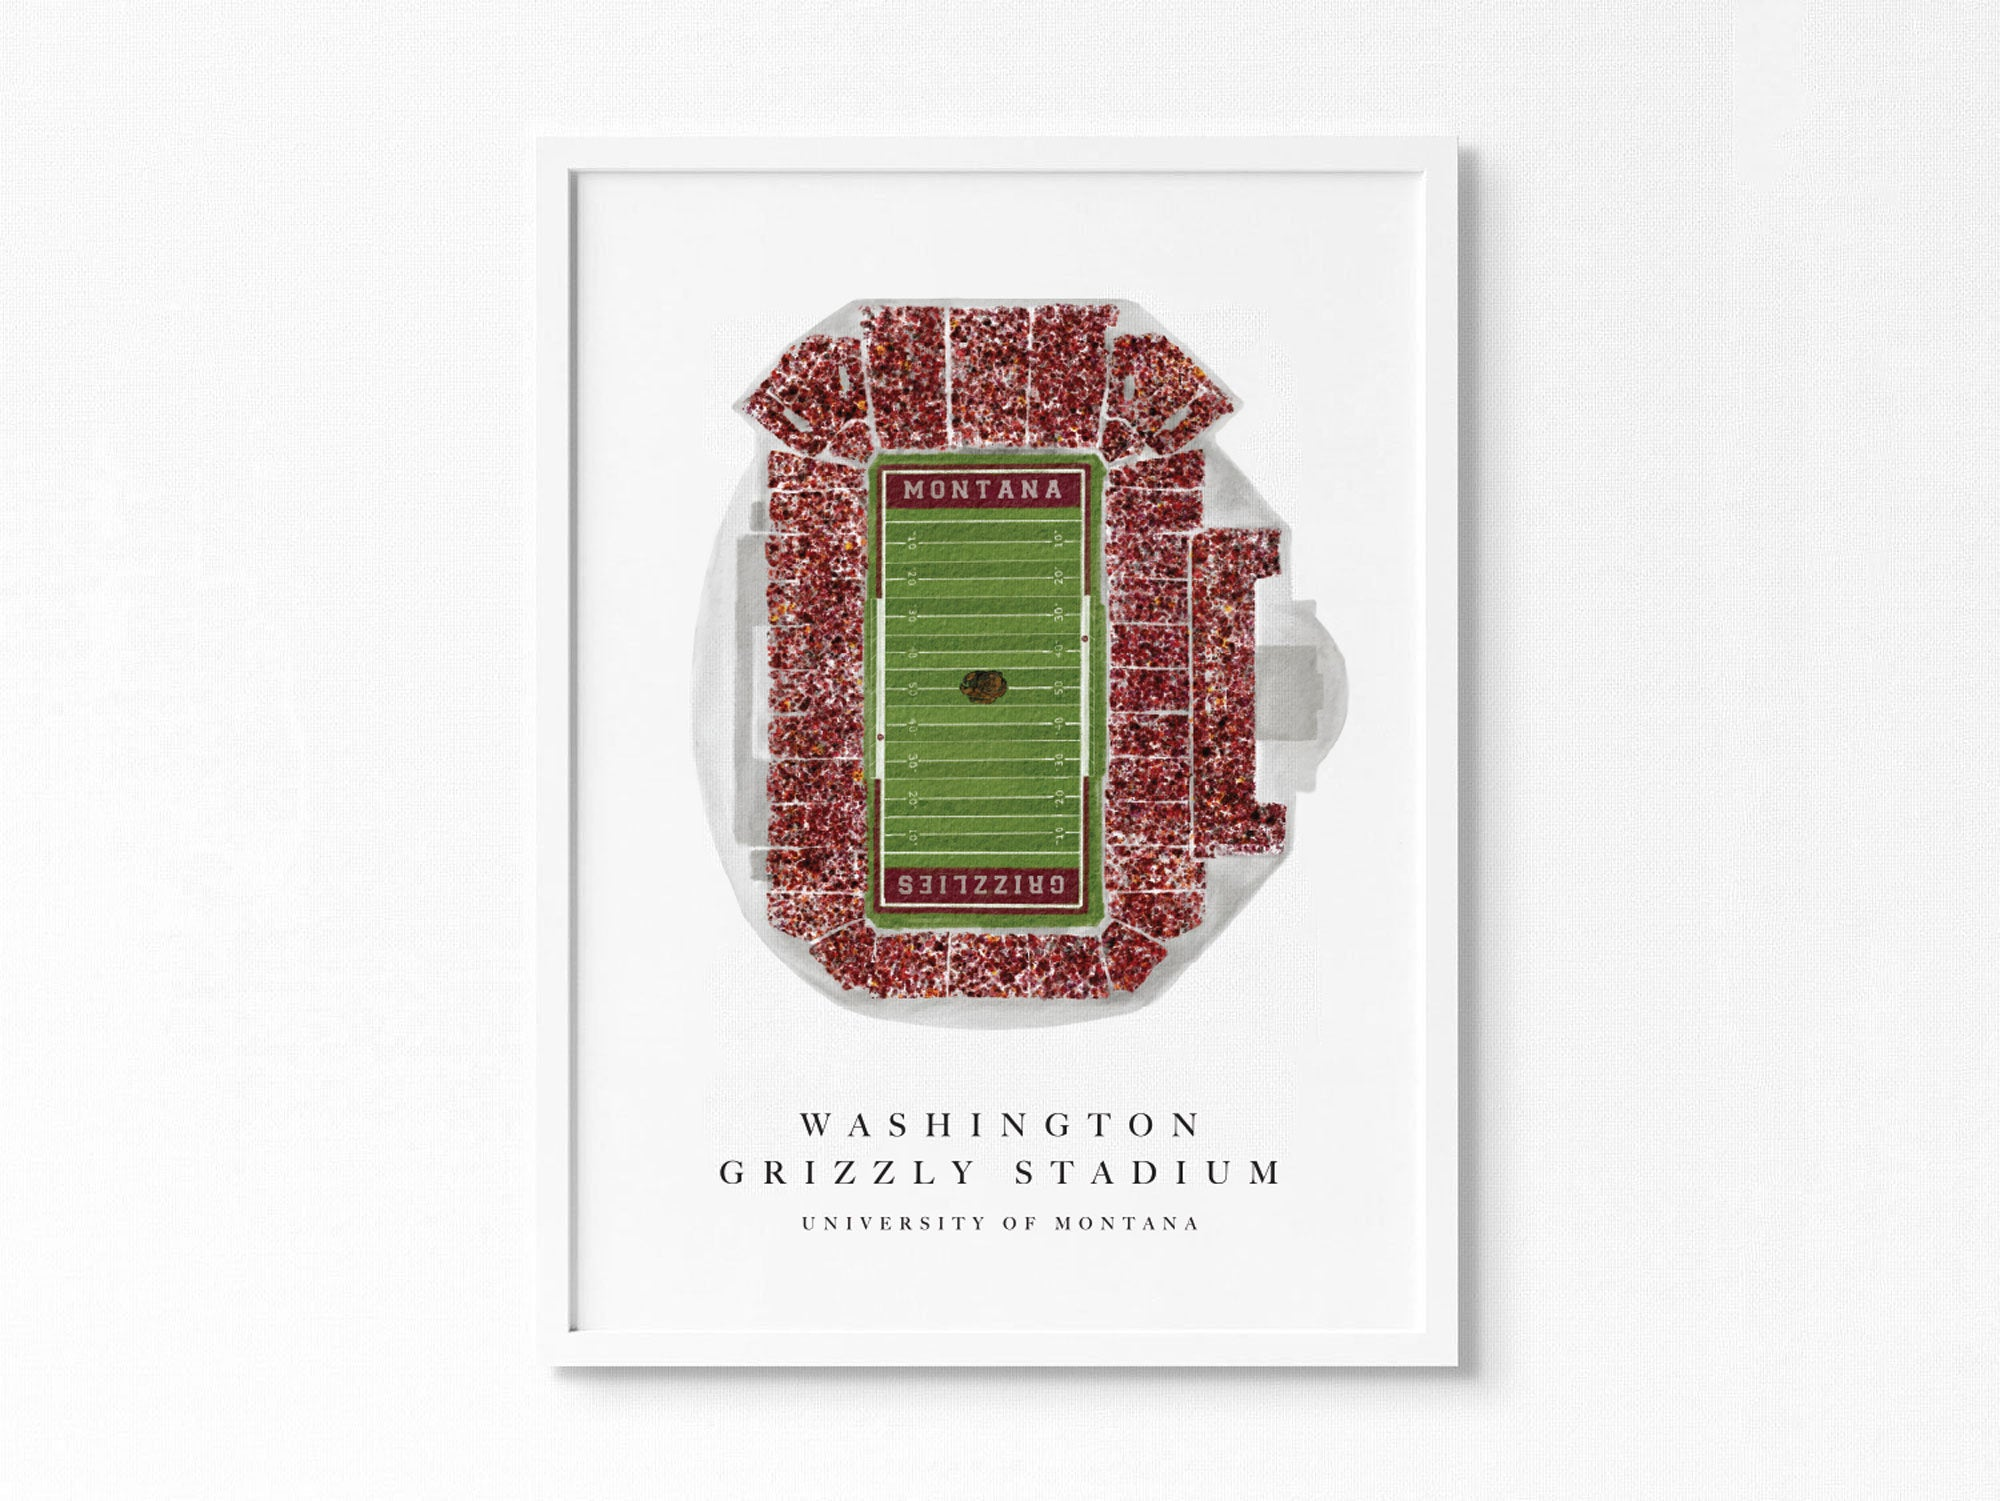 University of Montana Grizzlies | Washington-Grizzly Stadium, Missoula Montana, Football Seating Chart